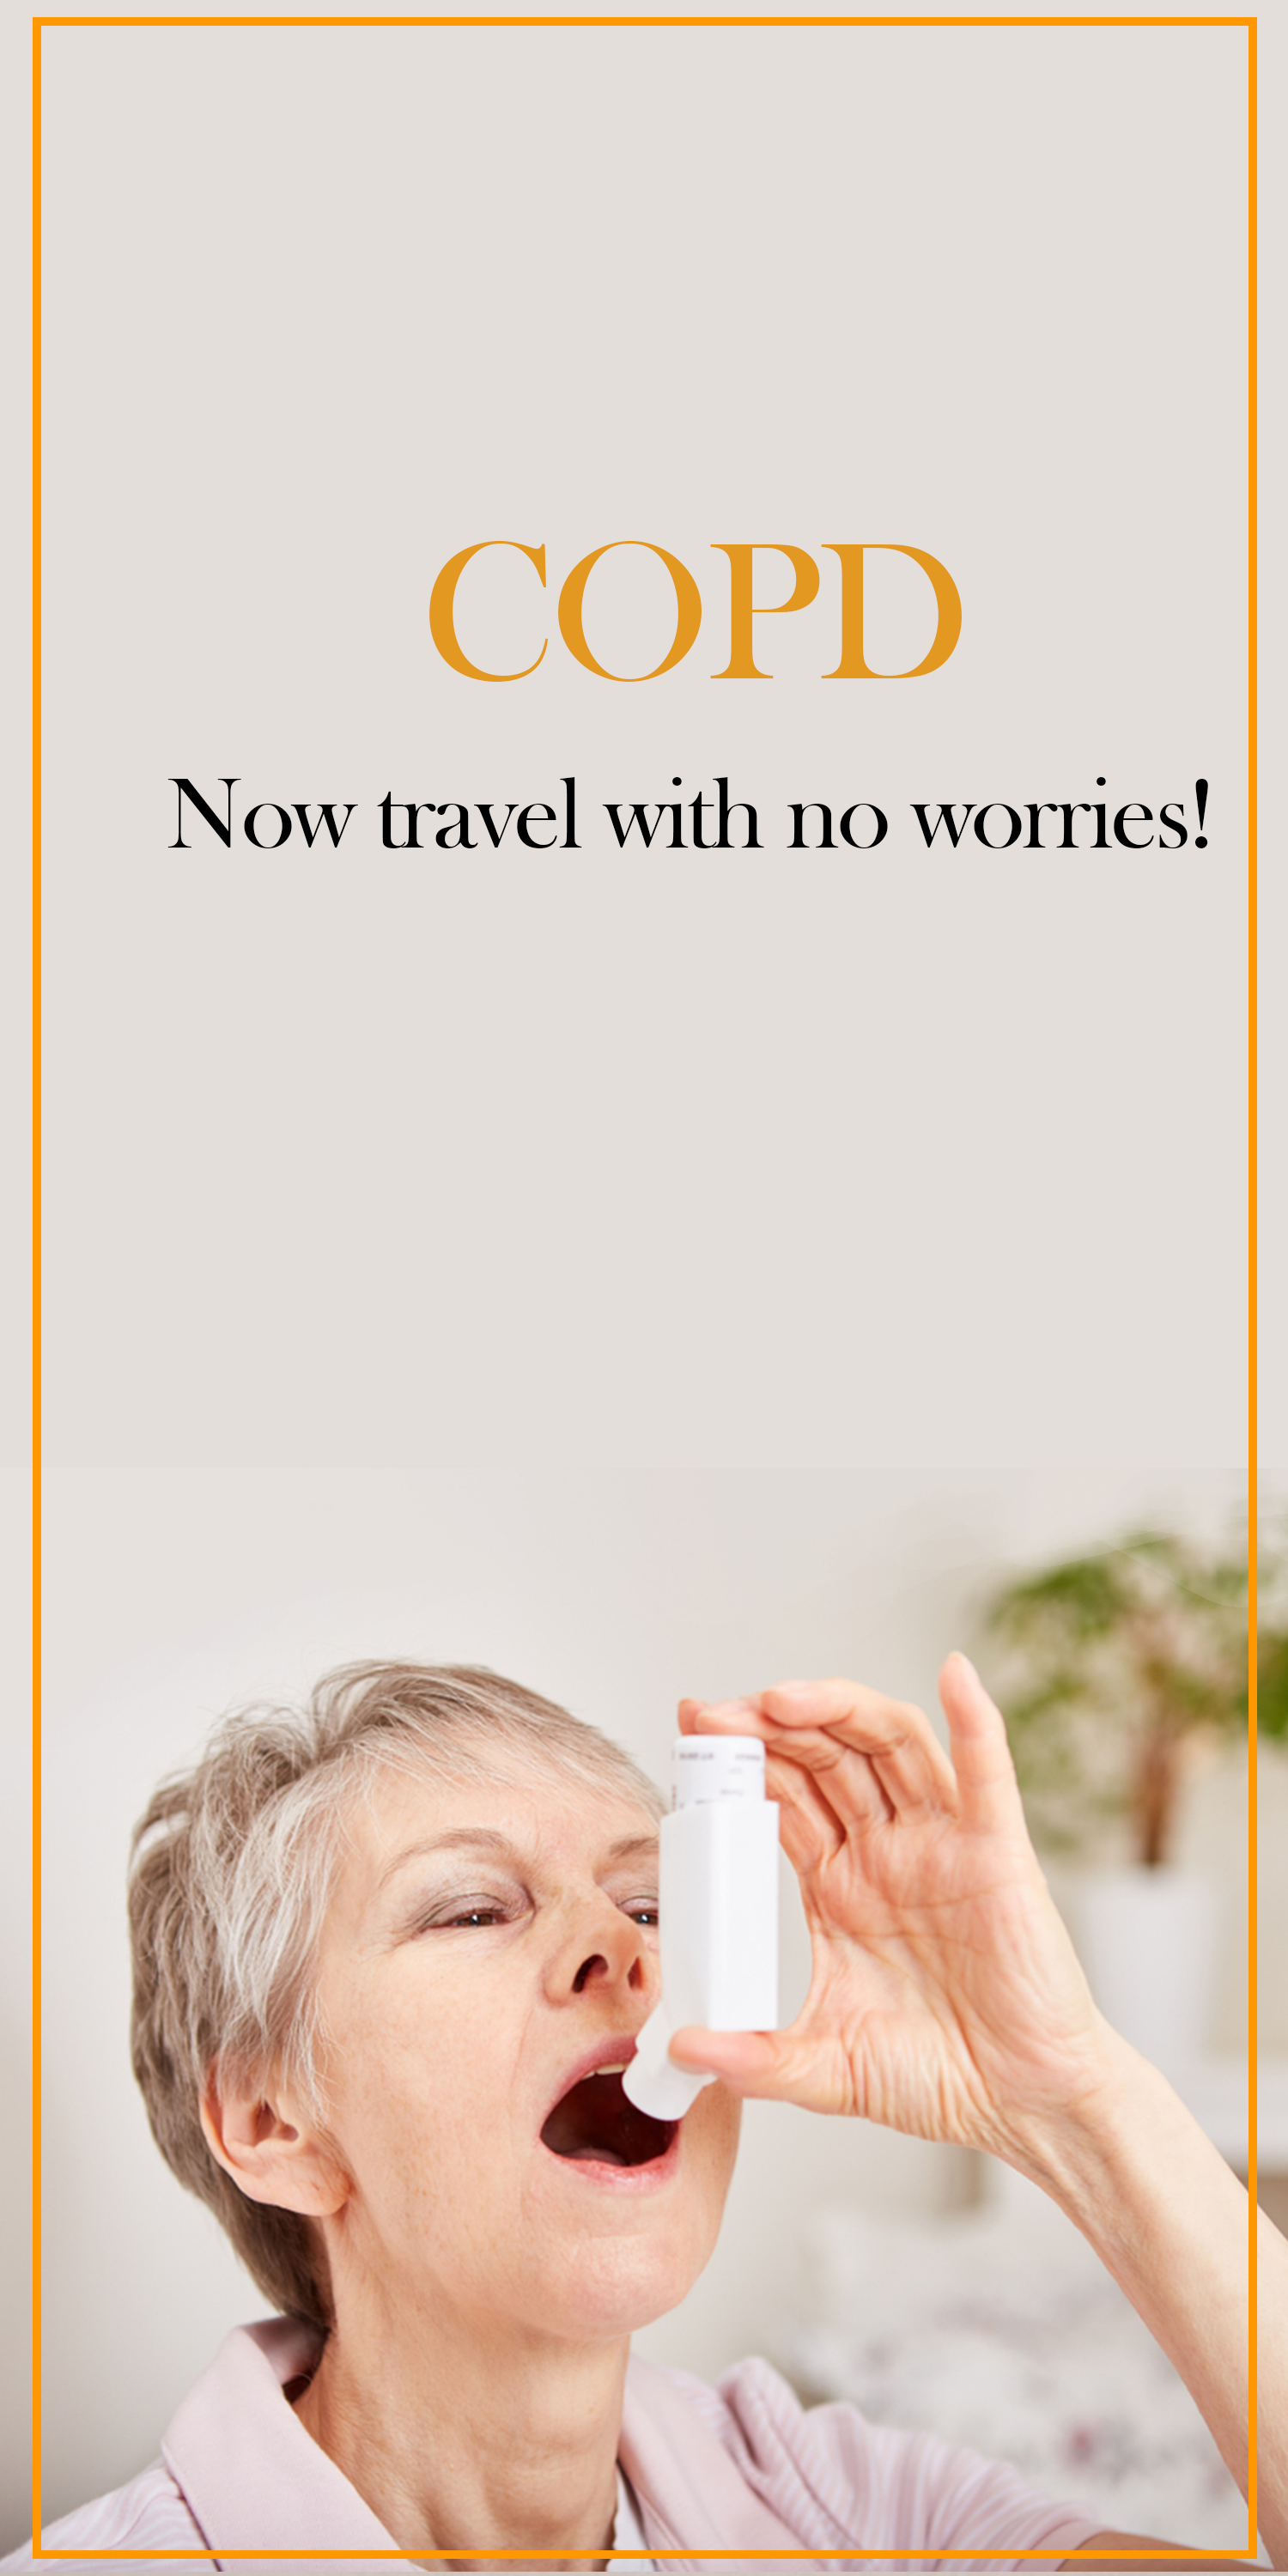 Copd Symptoms During Travel Let Us Help You Plan A Safe Trip With Copd Copd Chronic Obstructive Pulmonary Disease Pulmonary Disease